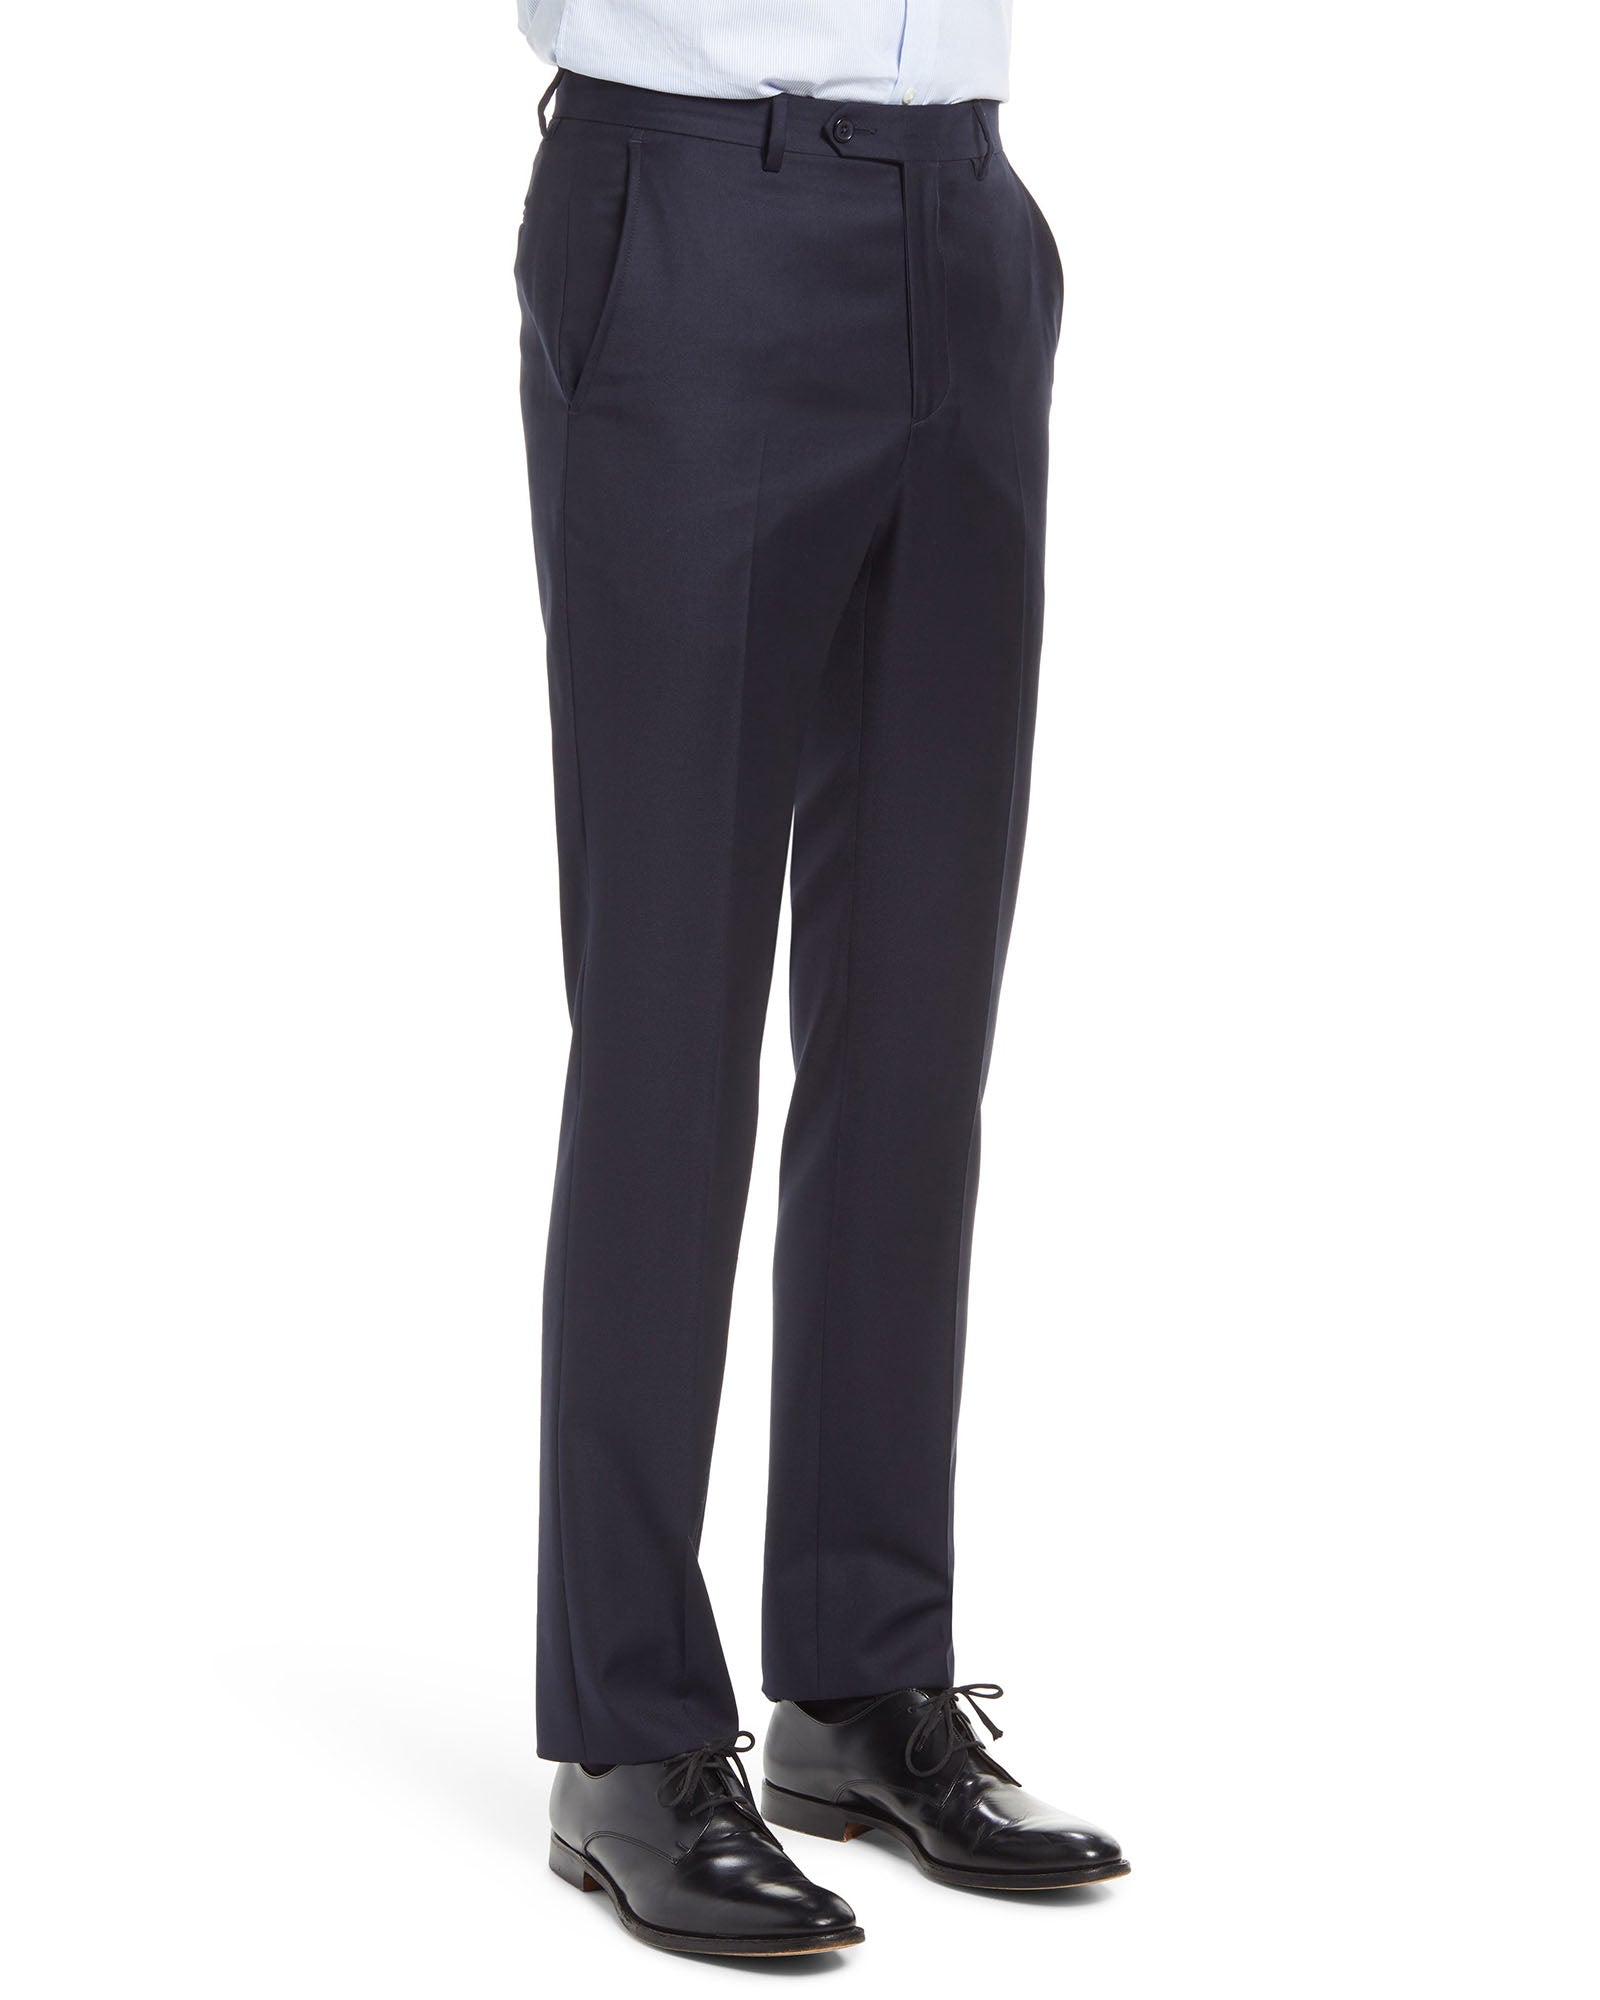 Dean Rainwater Made In Italy fabic by Tollegno Super 150's Wool Dress Slacks in Navy Blue - Rainwater's